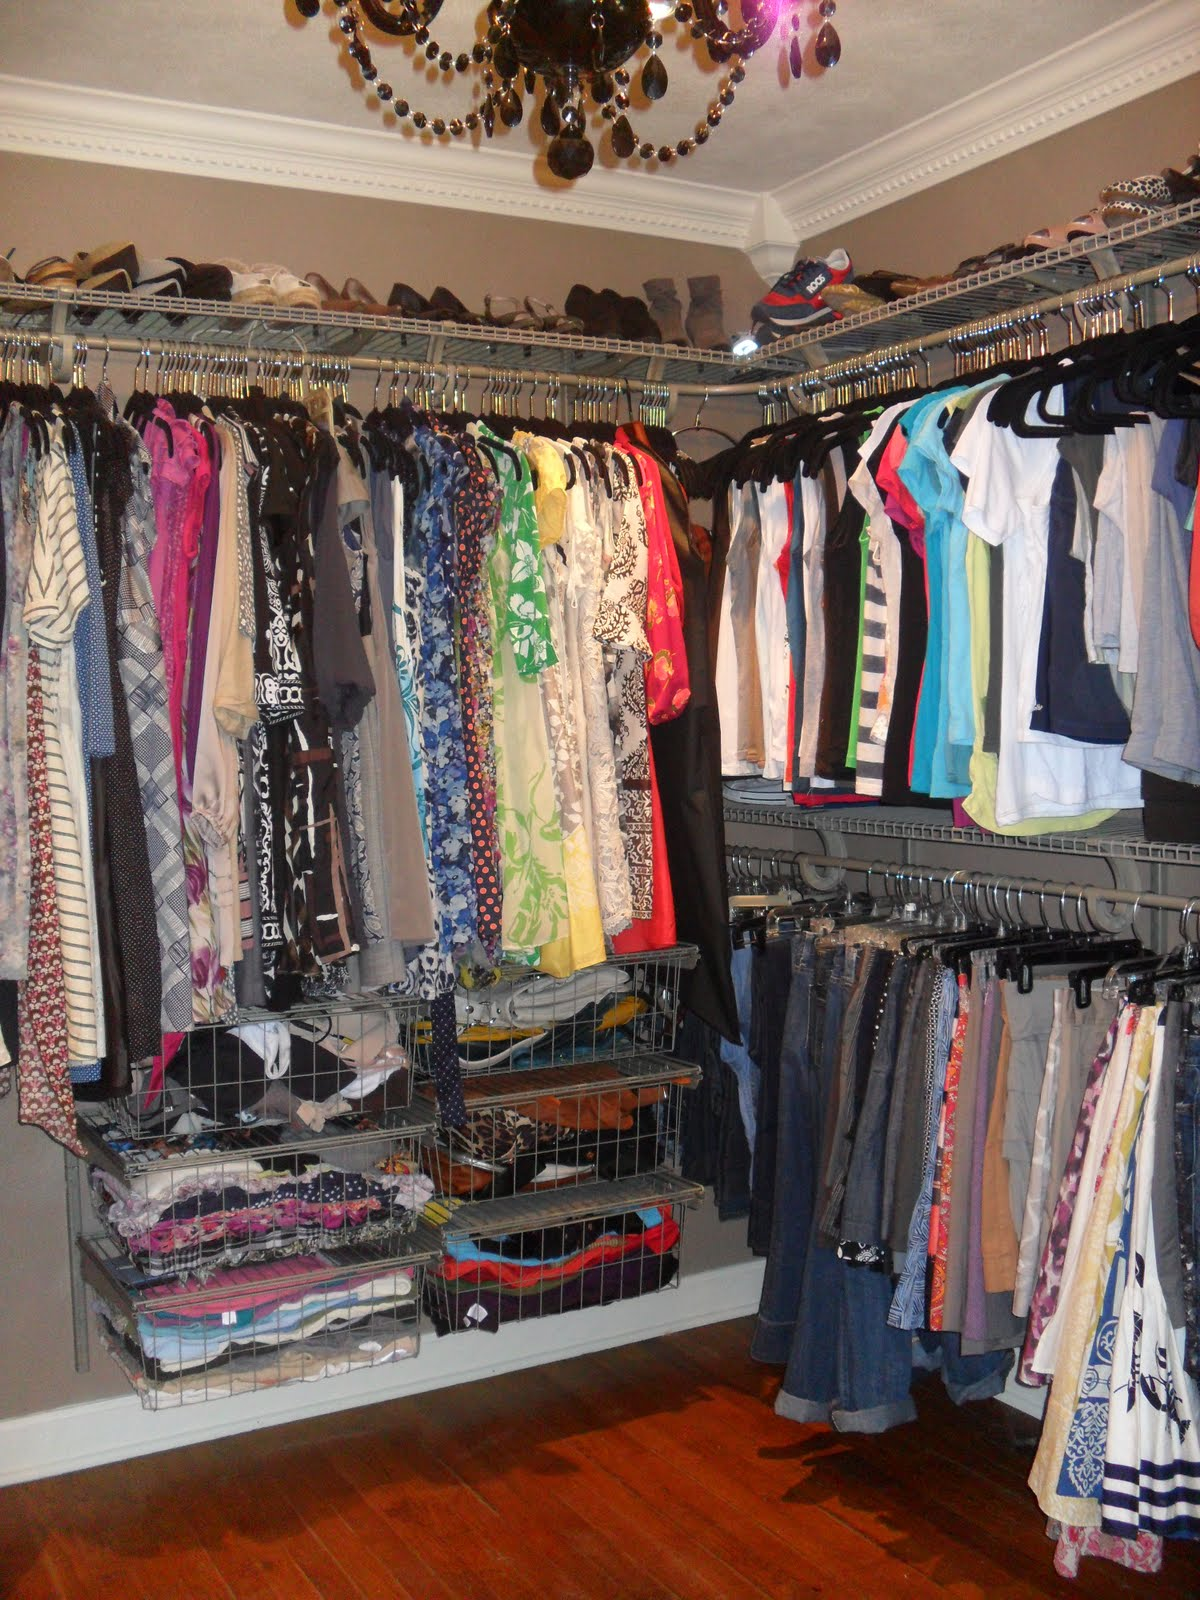 Petite early morning style diy walk in closet renovation - Walk in wardrobes diy ...